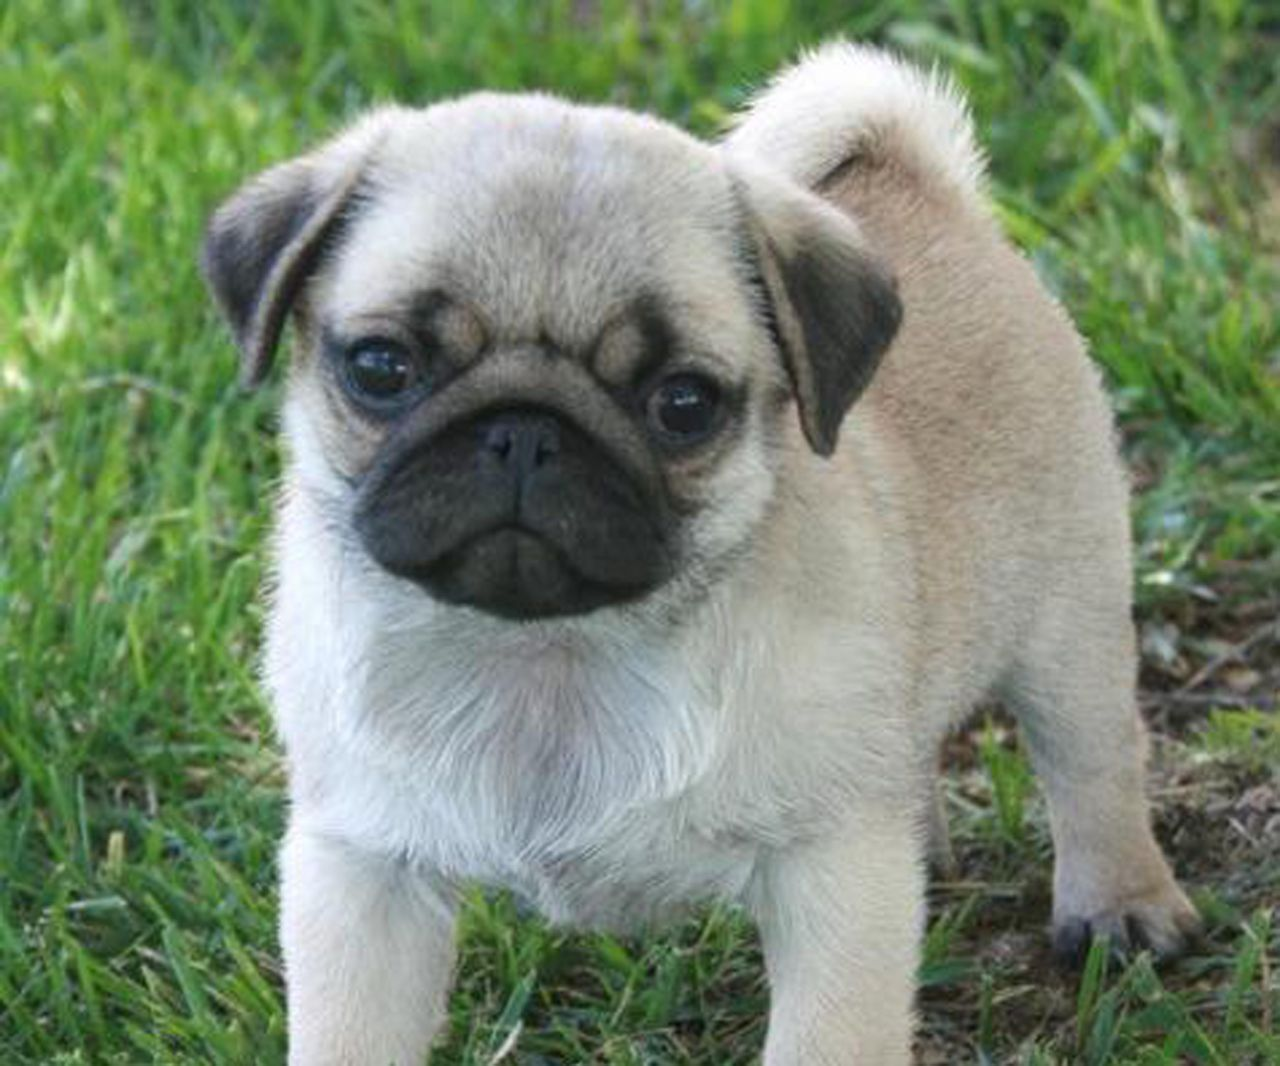 This Pug Puppies For Sale 580 Posted 26 Days Ago For Sale ...